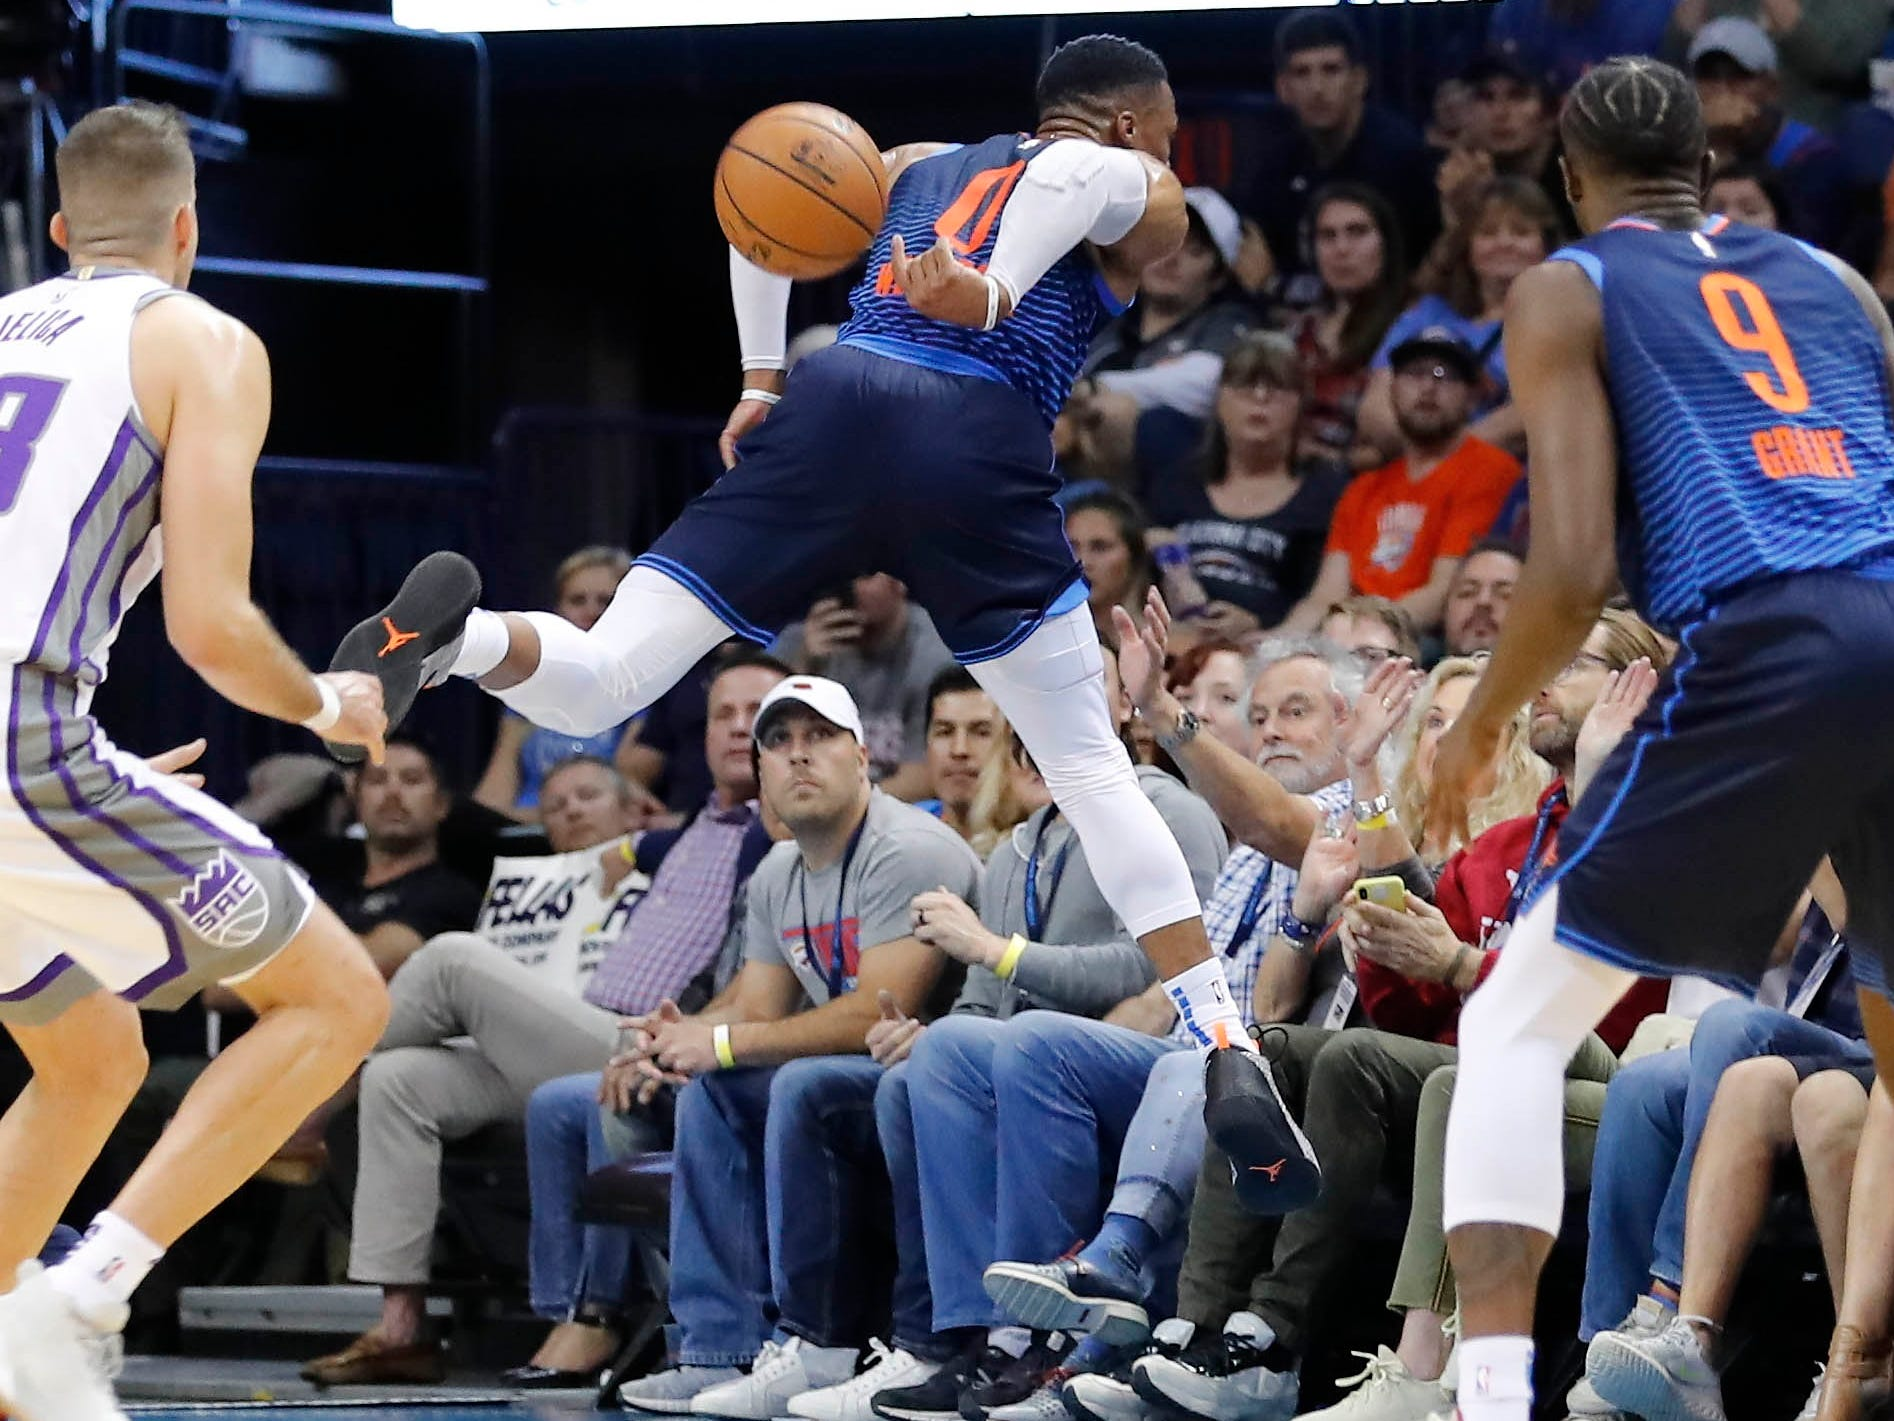 Oct. 21: Thunder guard Russell Westbrook (0) leaps into the first row of fans to save a loose ball from going out of bounds against the Kings in Oklahoma City.